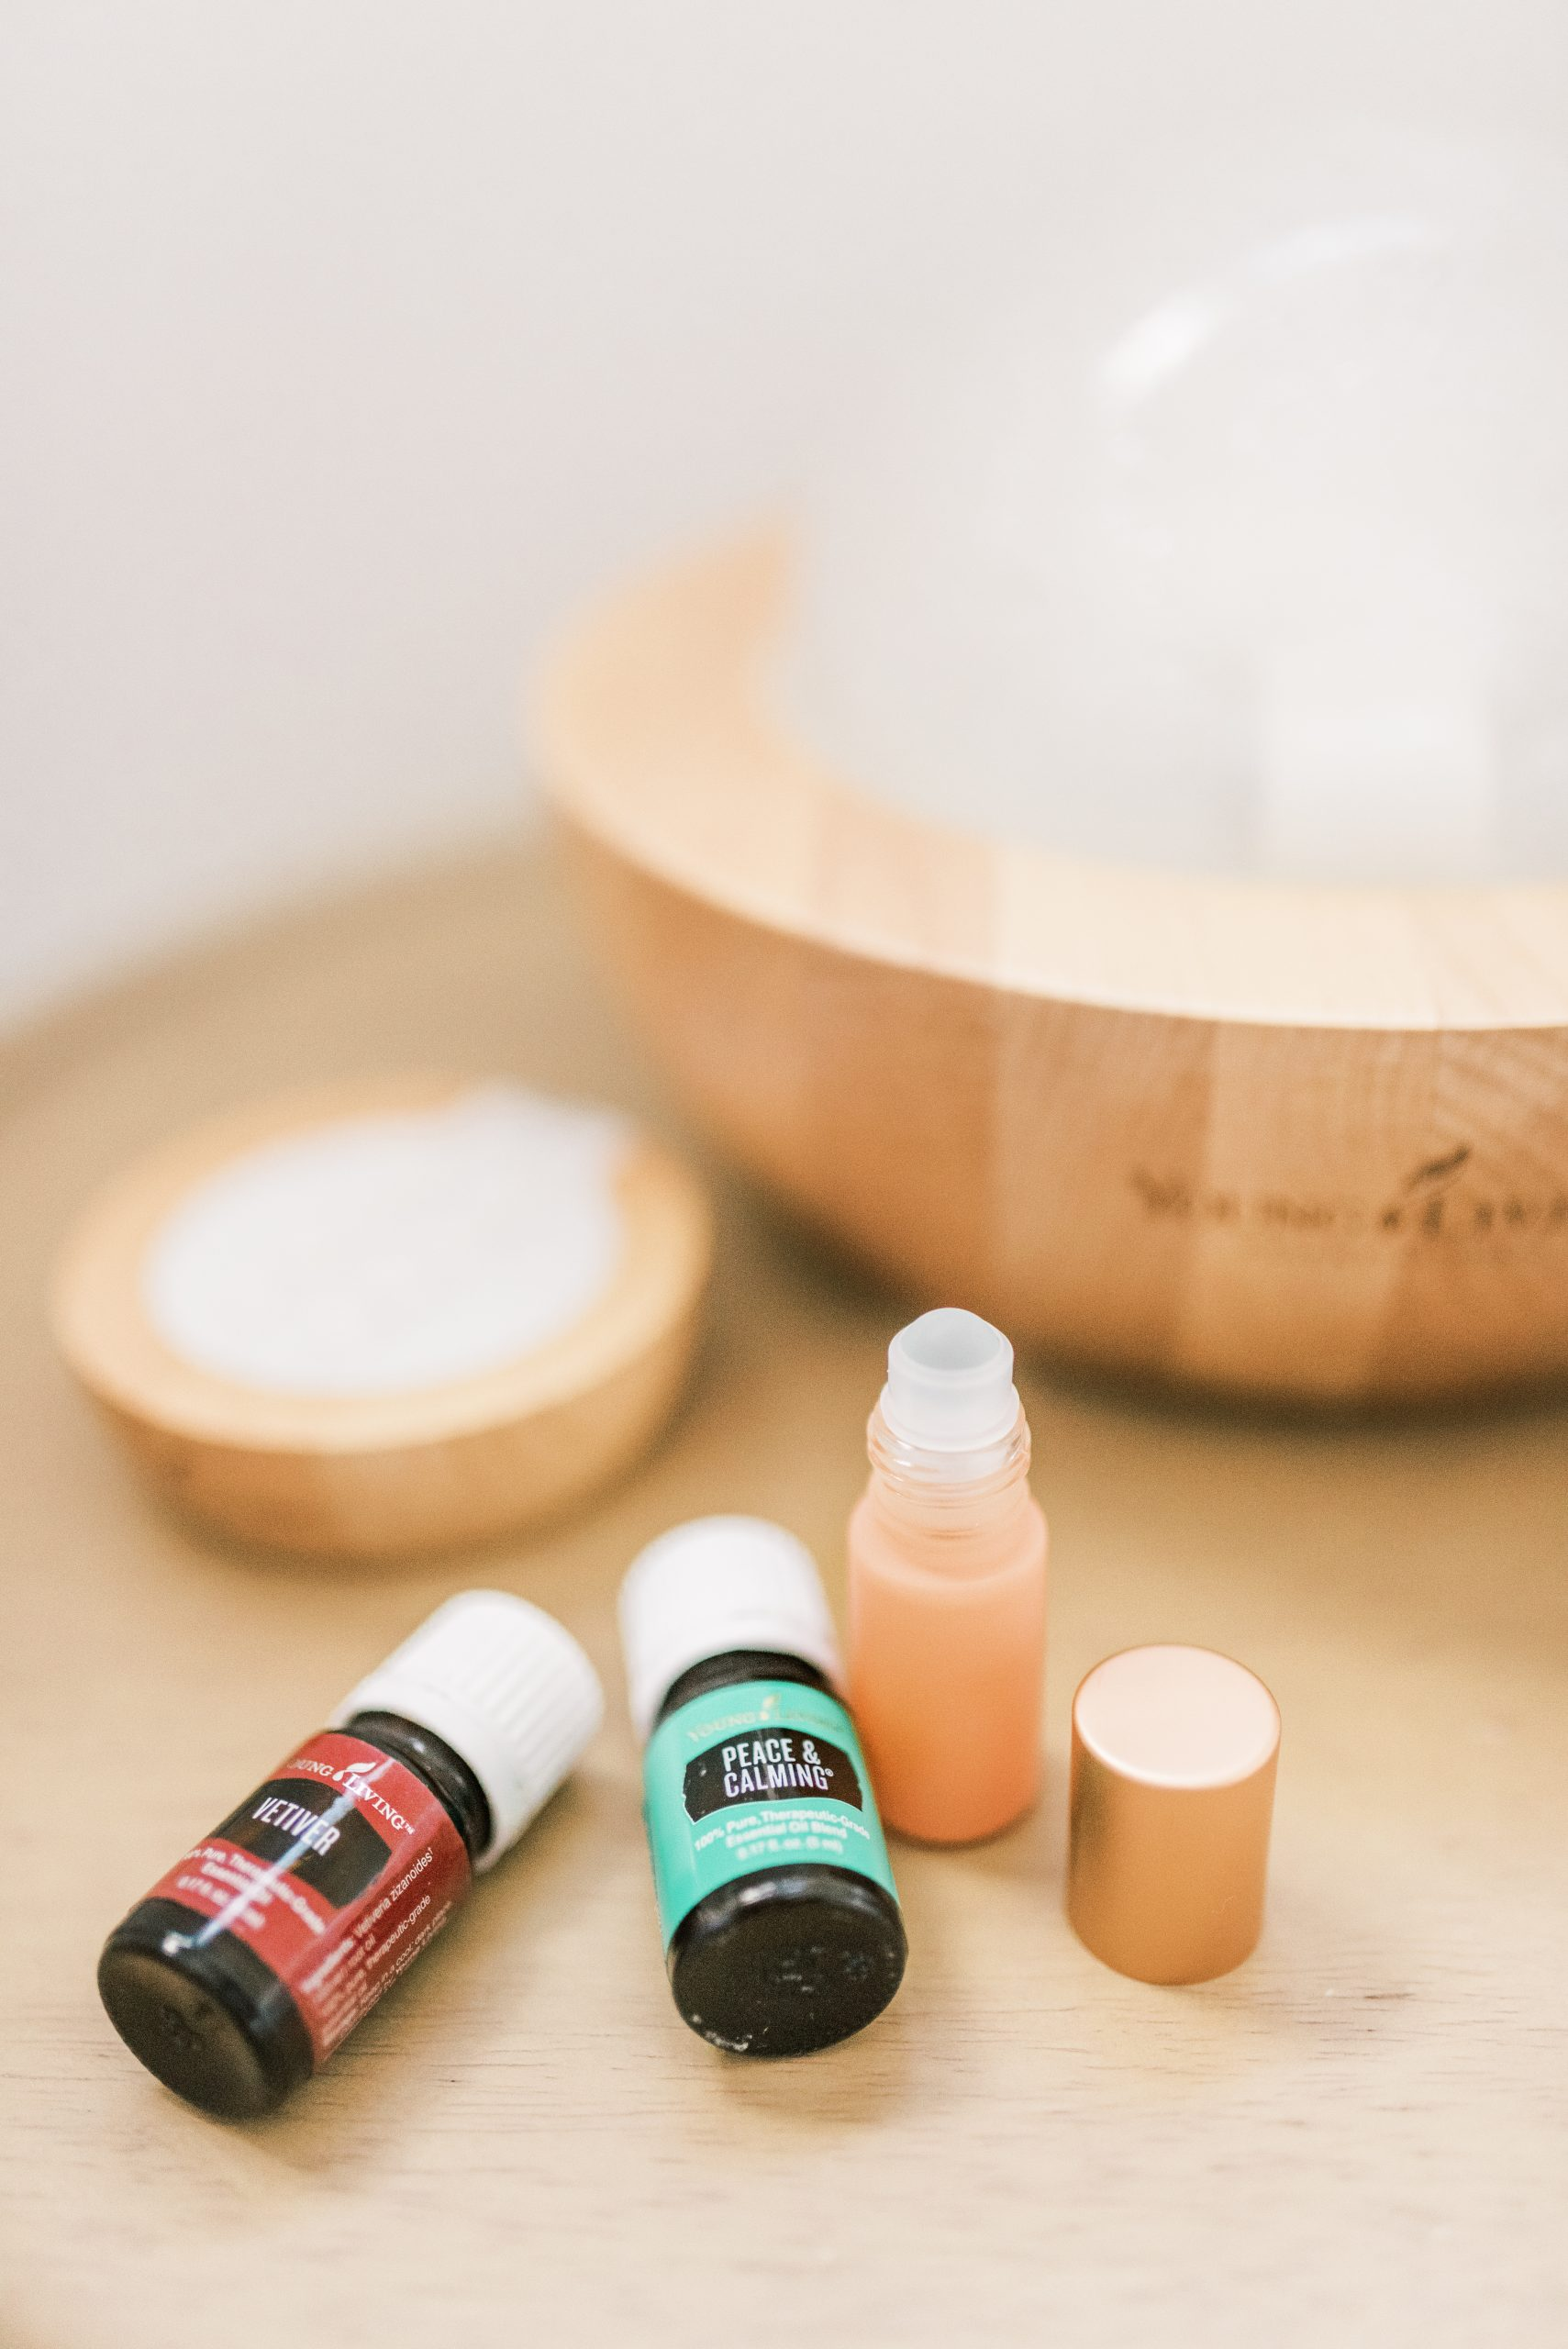 Alex Hinders shares her favorite sleep support diffuser blends using Whimsy + Wellness products and Young Living essential oils.